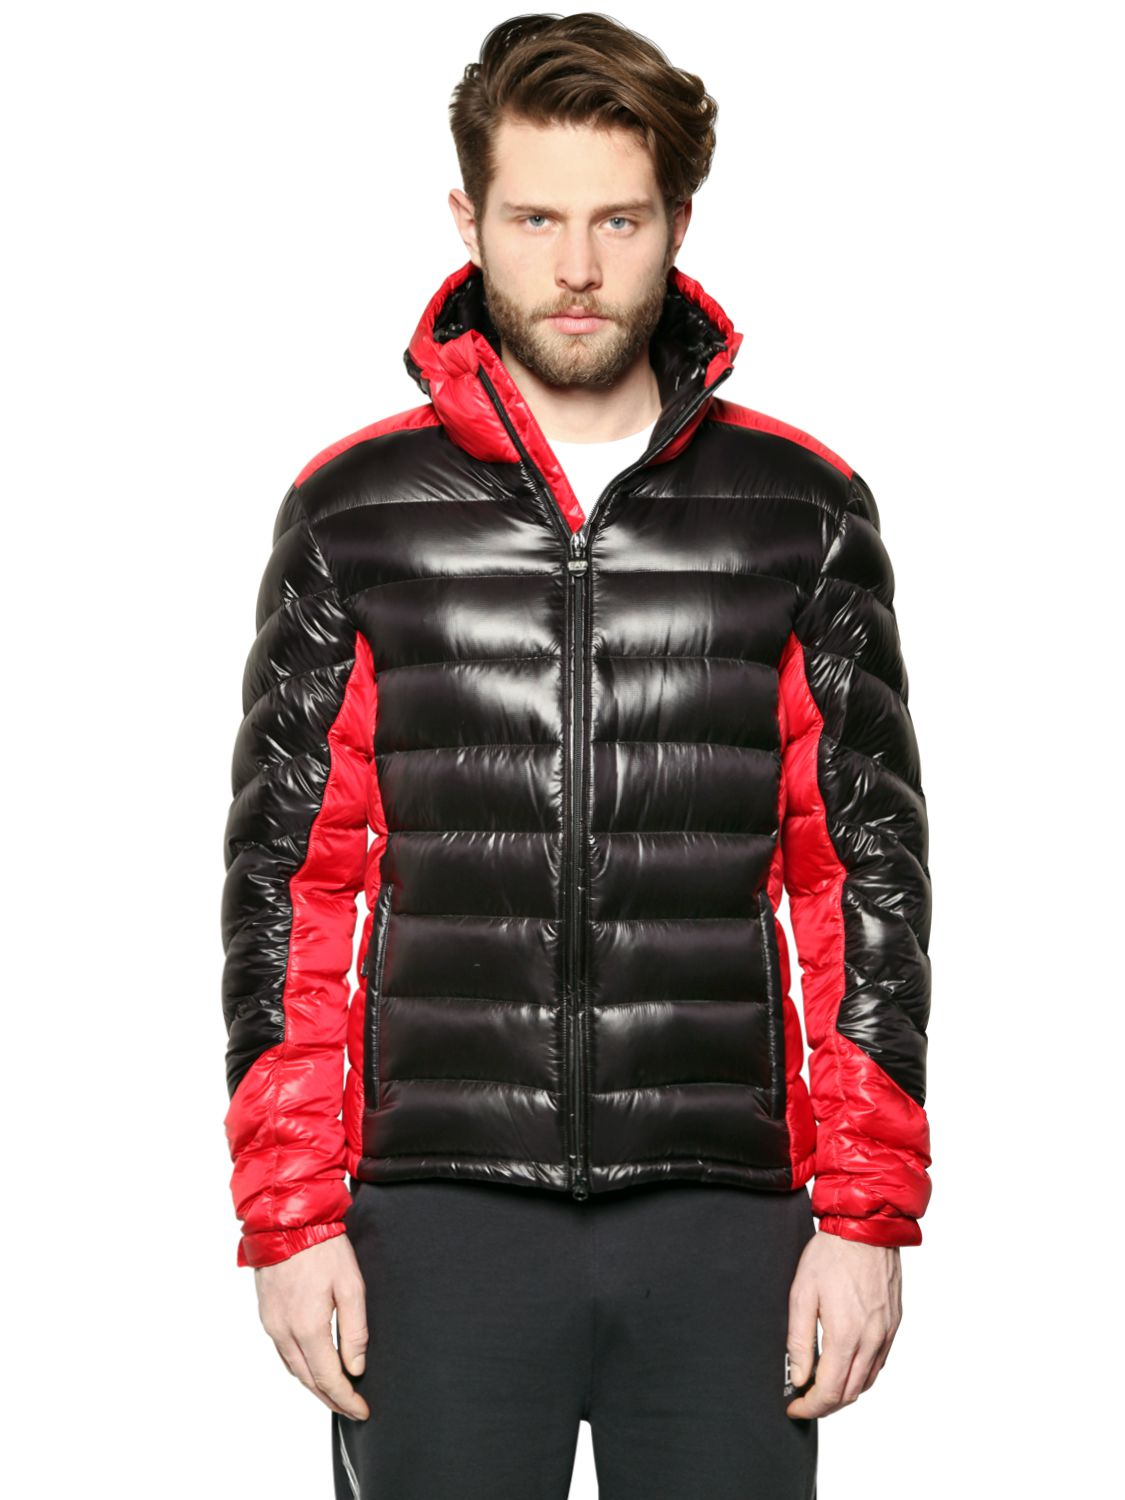 415d342b9 Emporio Armani Extreme Shiny Nylon Down Jacket in Red for Men - Lyst